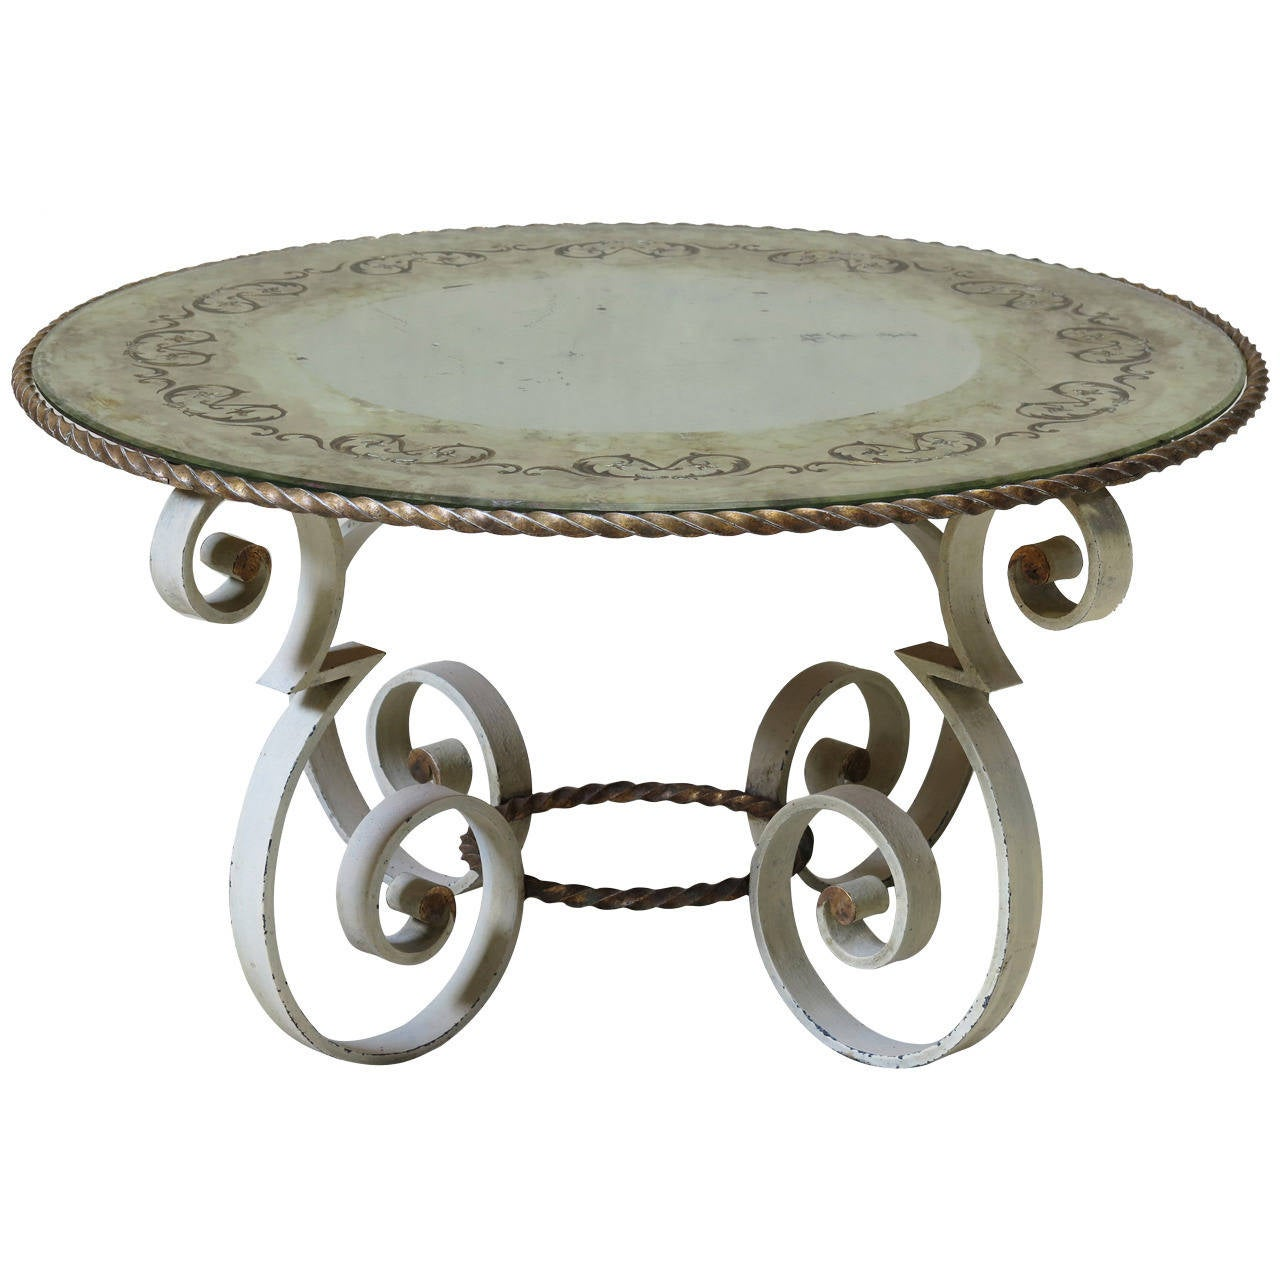 Wrought iron coffee table with eglomis mirror top france 1940s at 1stdibs Wrought iron coffee tables